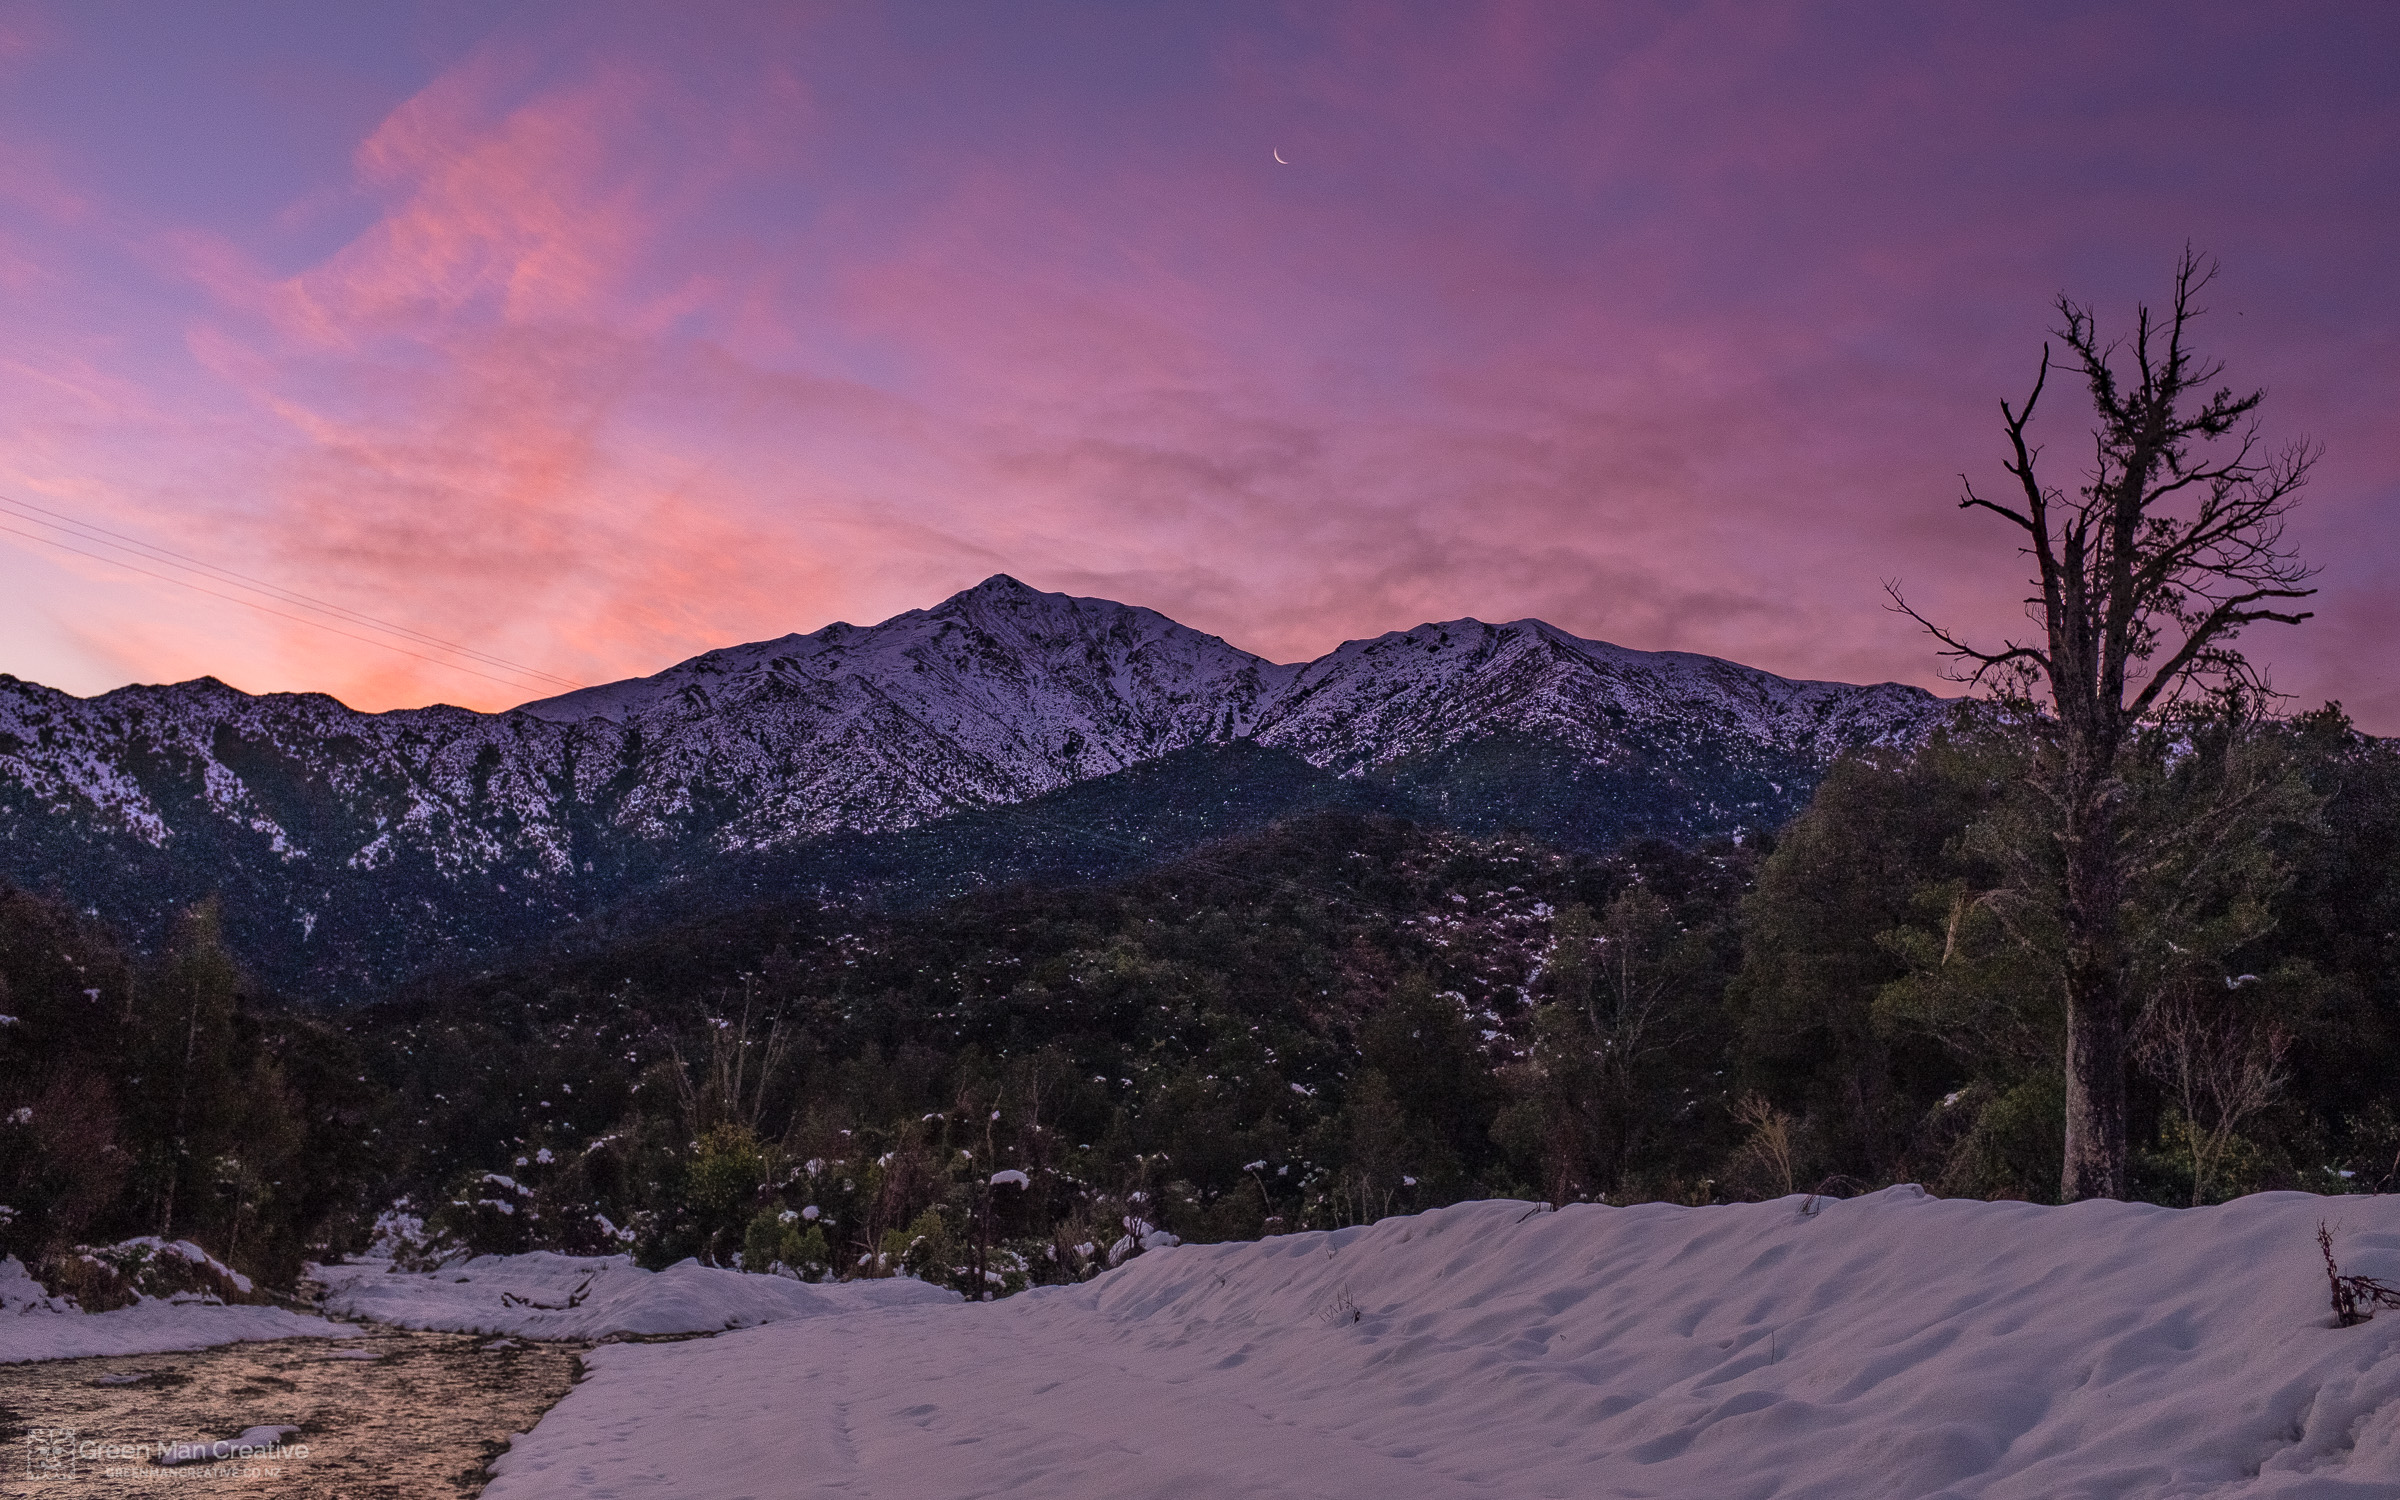 Snow on Mt Peel with Pink Sunrise